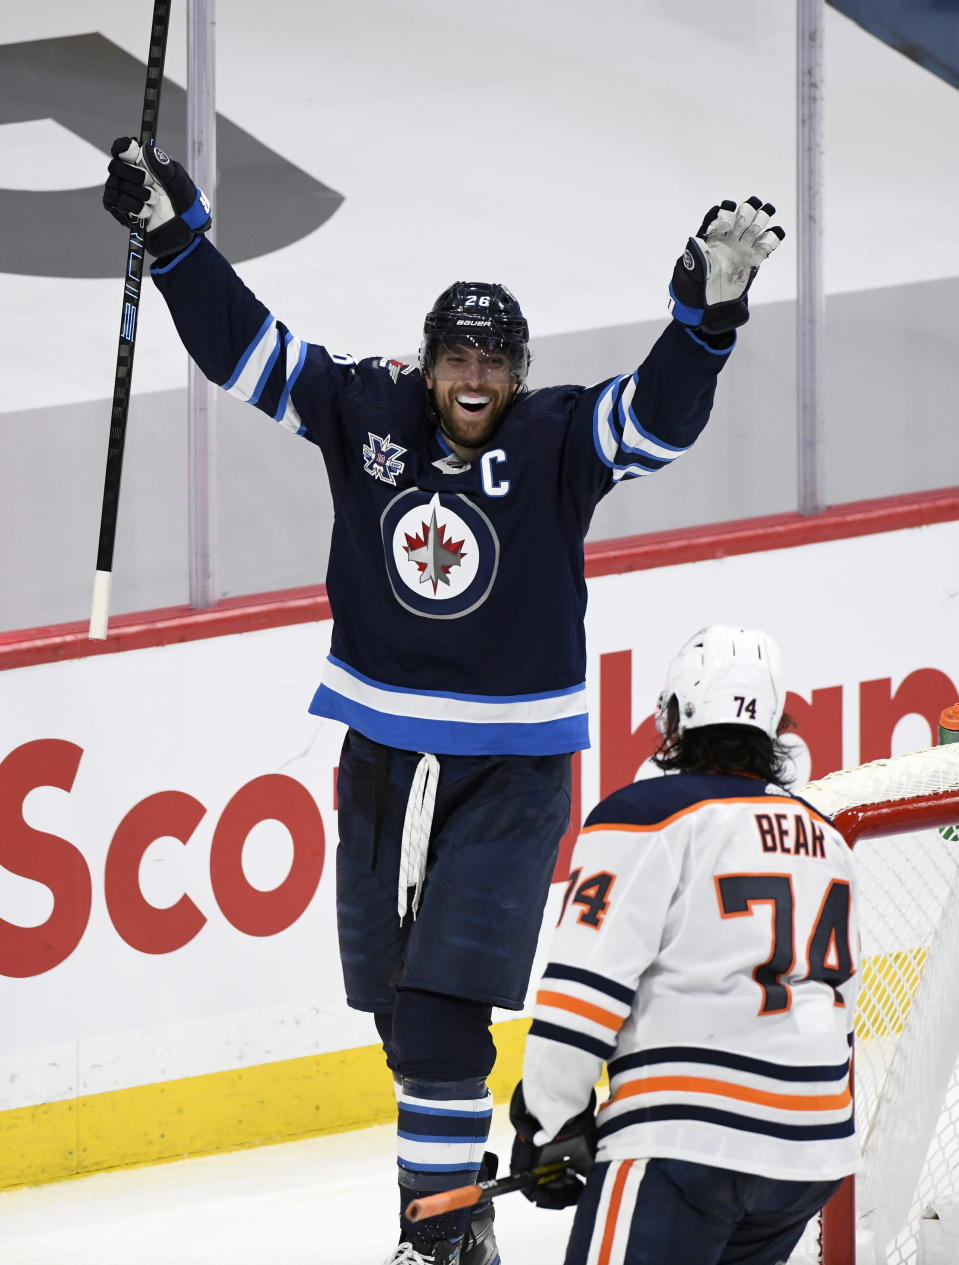 Winnipeg Jets' Blake Wheeler (26) celebrates a goal by Mark Scheifele during the third period of an NHL hockey Stanley Cup playoff game against the Edmonton Oilers, Monday, May 24, 2021, in Winnipeg, Manitoba. (Fred Greenslade/The Canadian Press via AP)